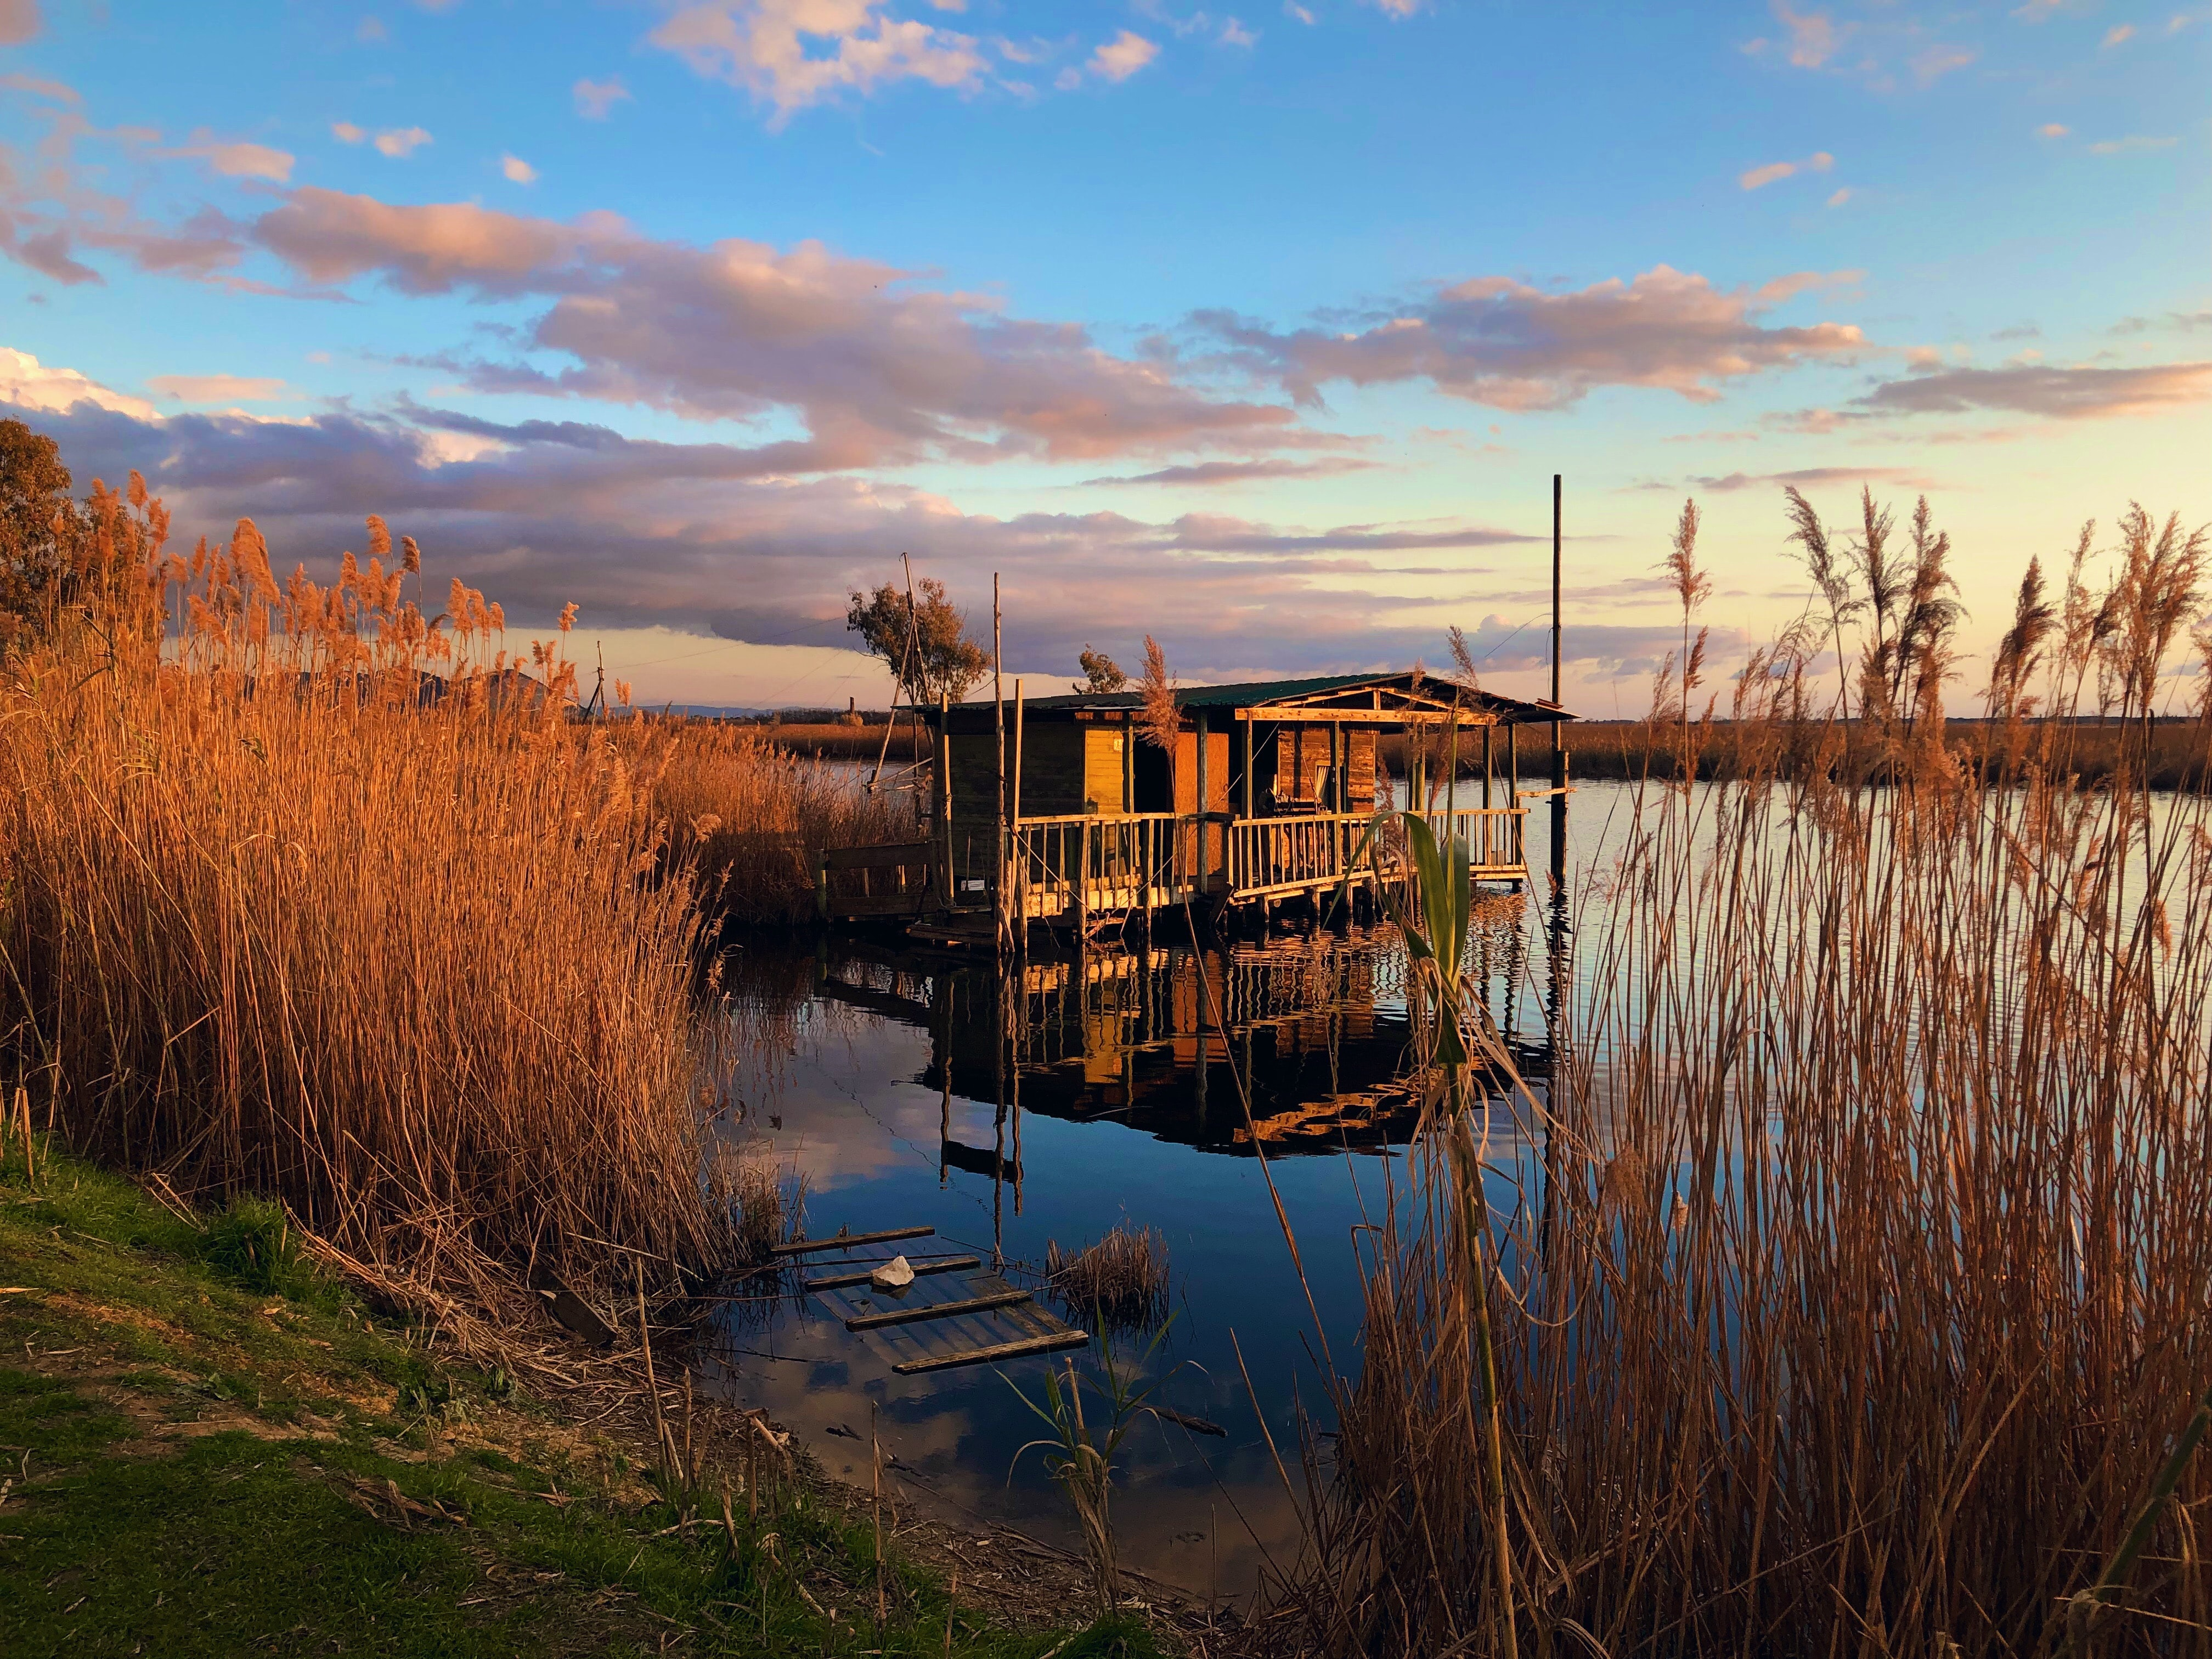 wooden house on body of water near grasses